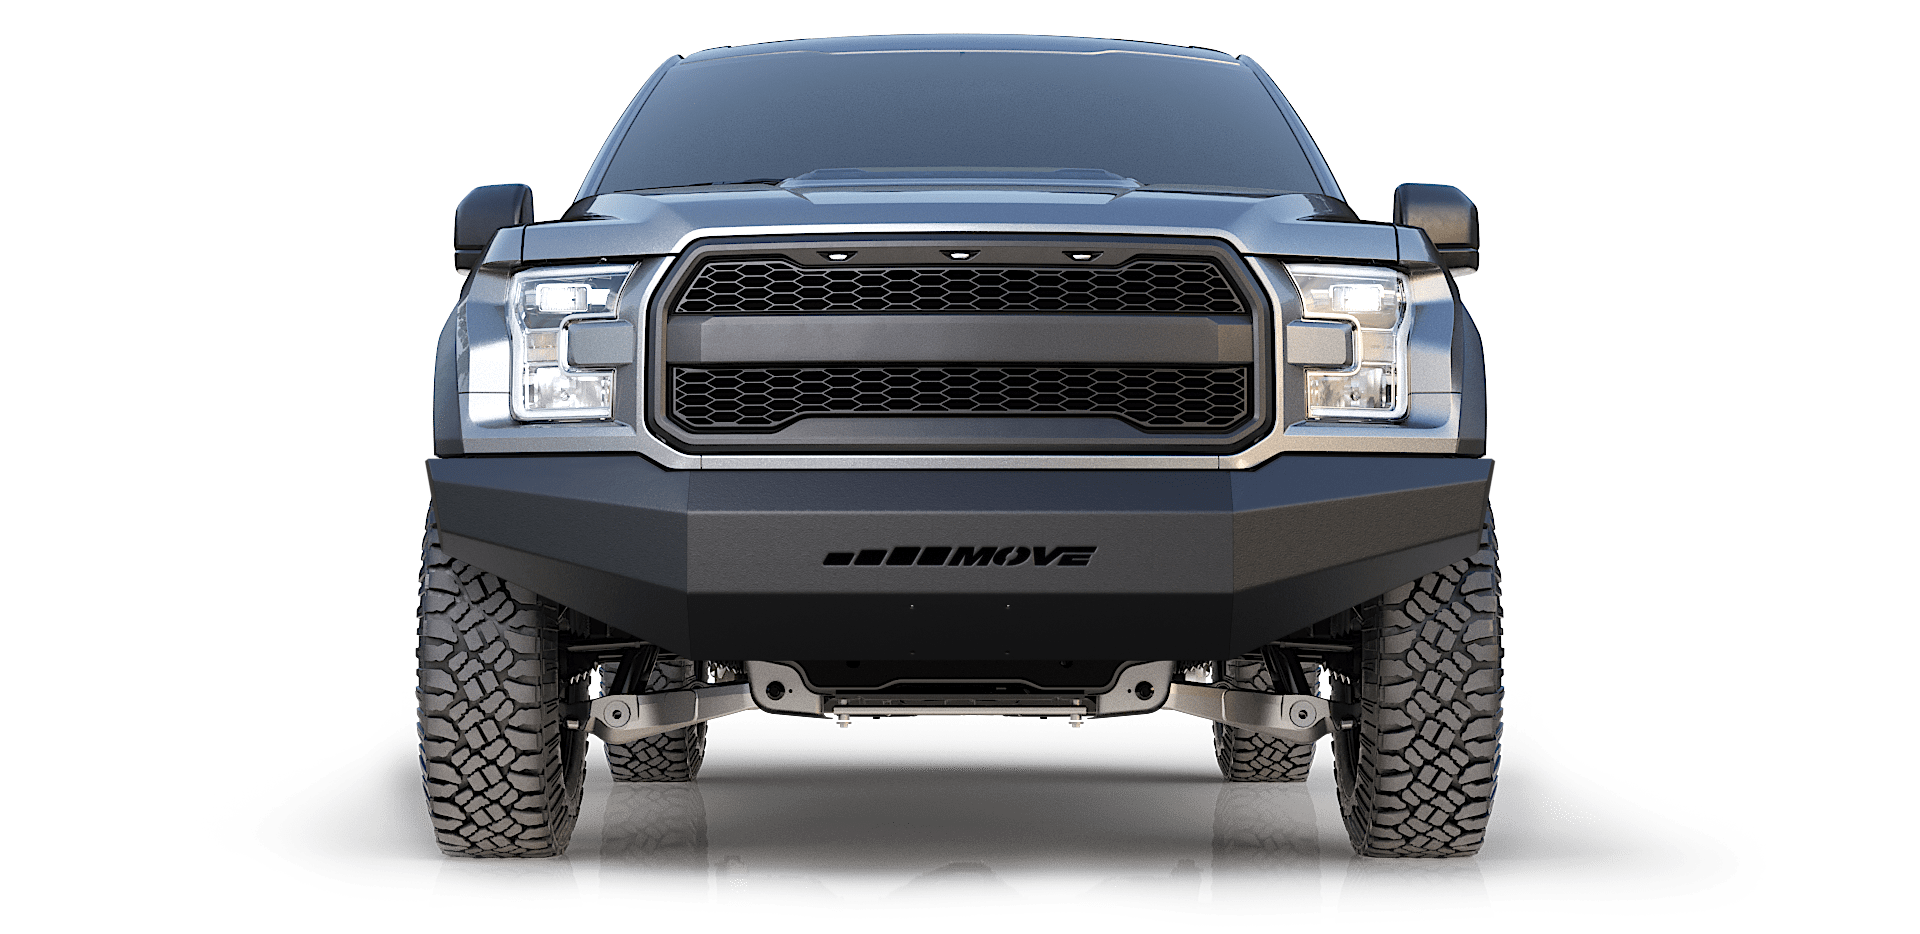 Build your custom diy bumper kit for trucks move bumpers build your custom diy bumper kit for trucks move bumpers solutioingenieria Image collections